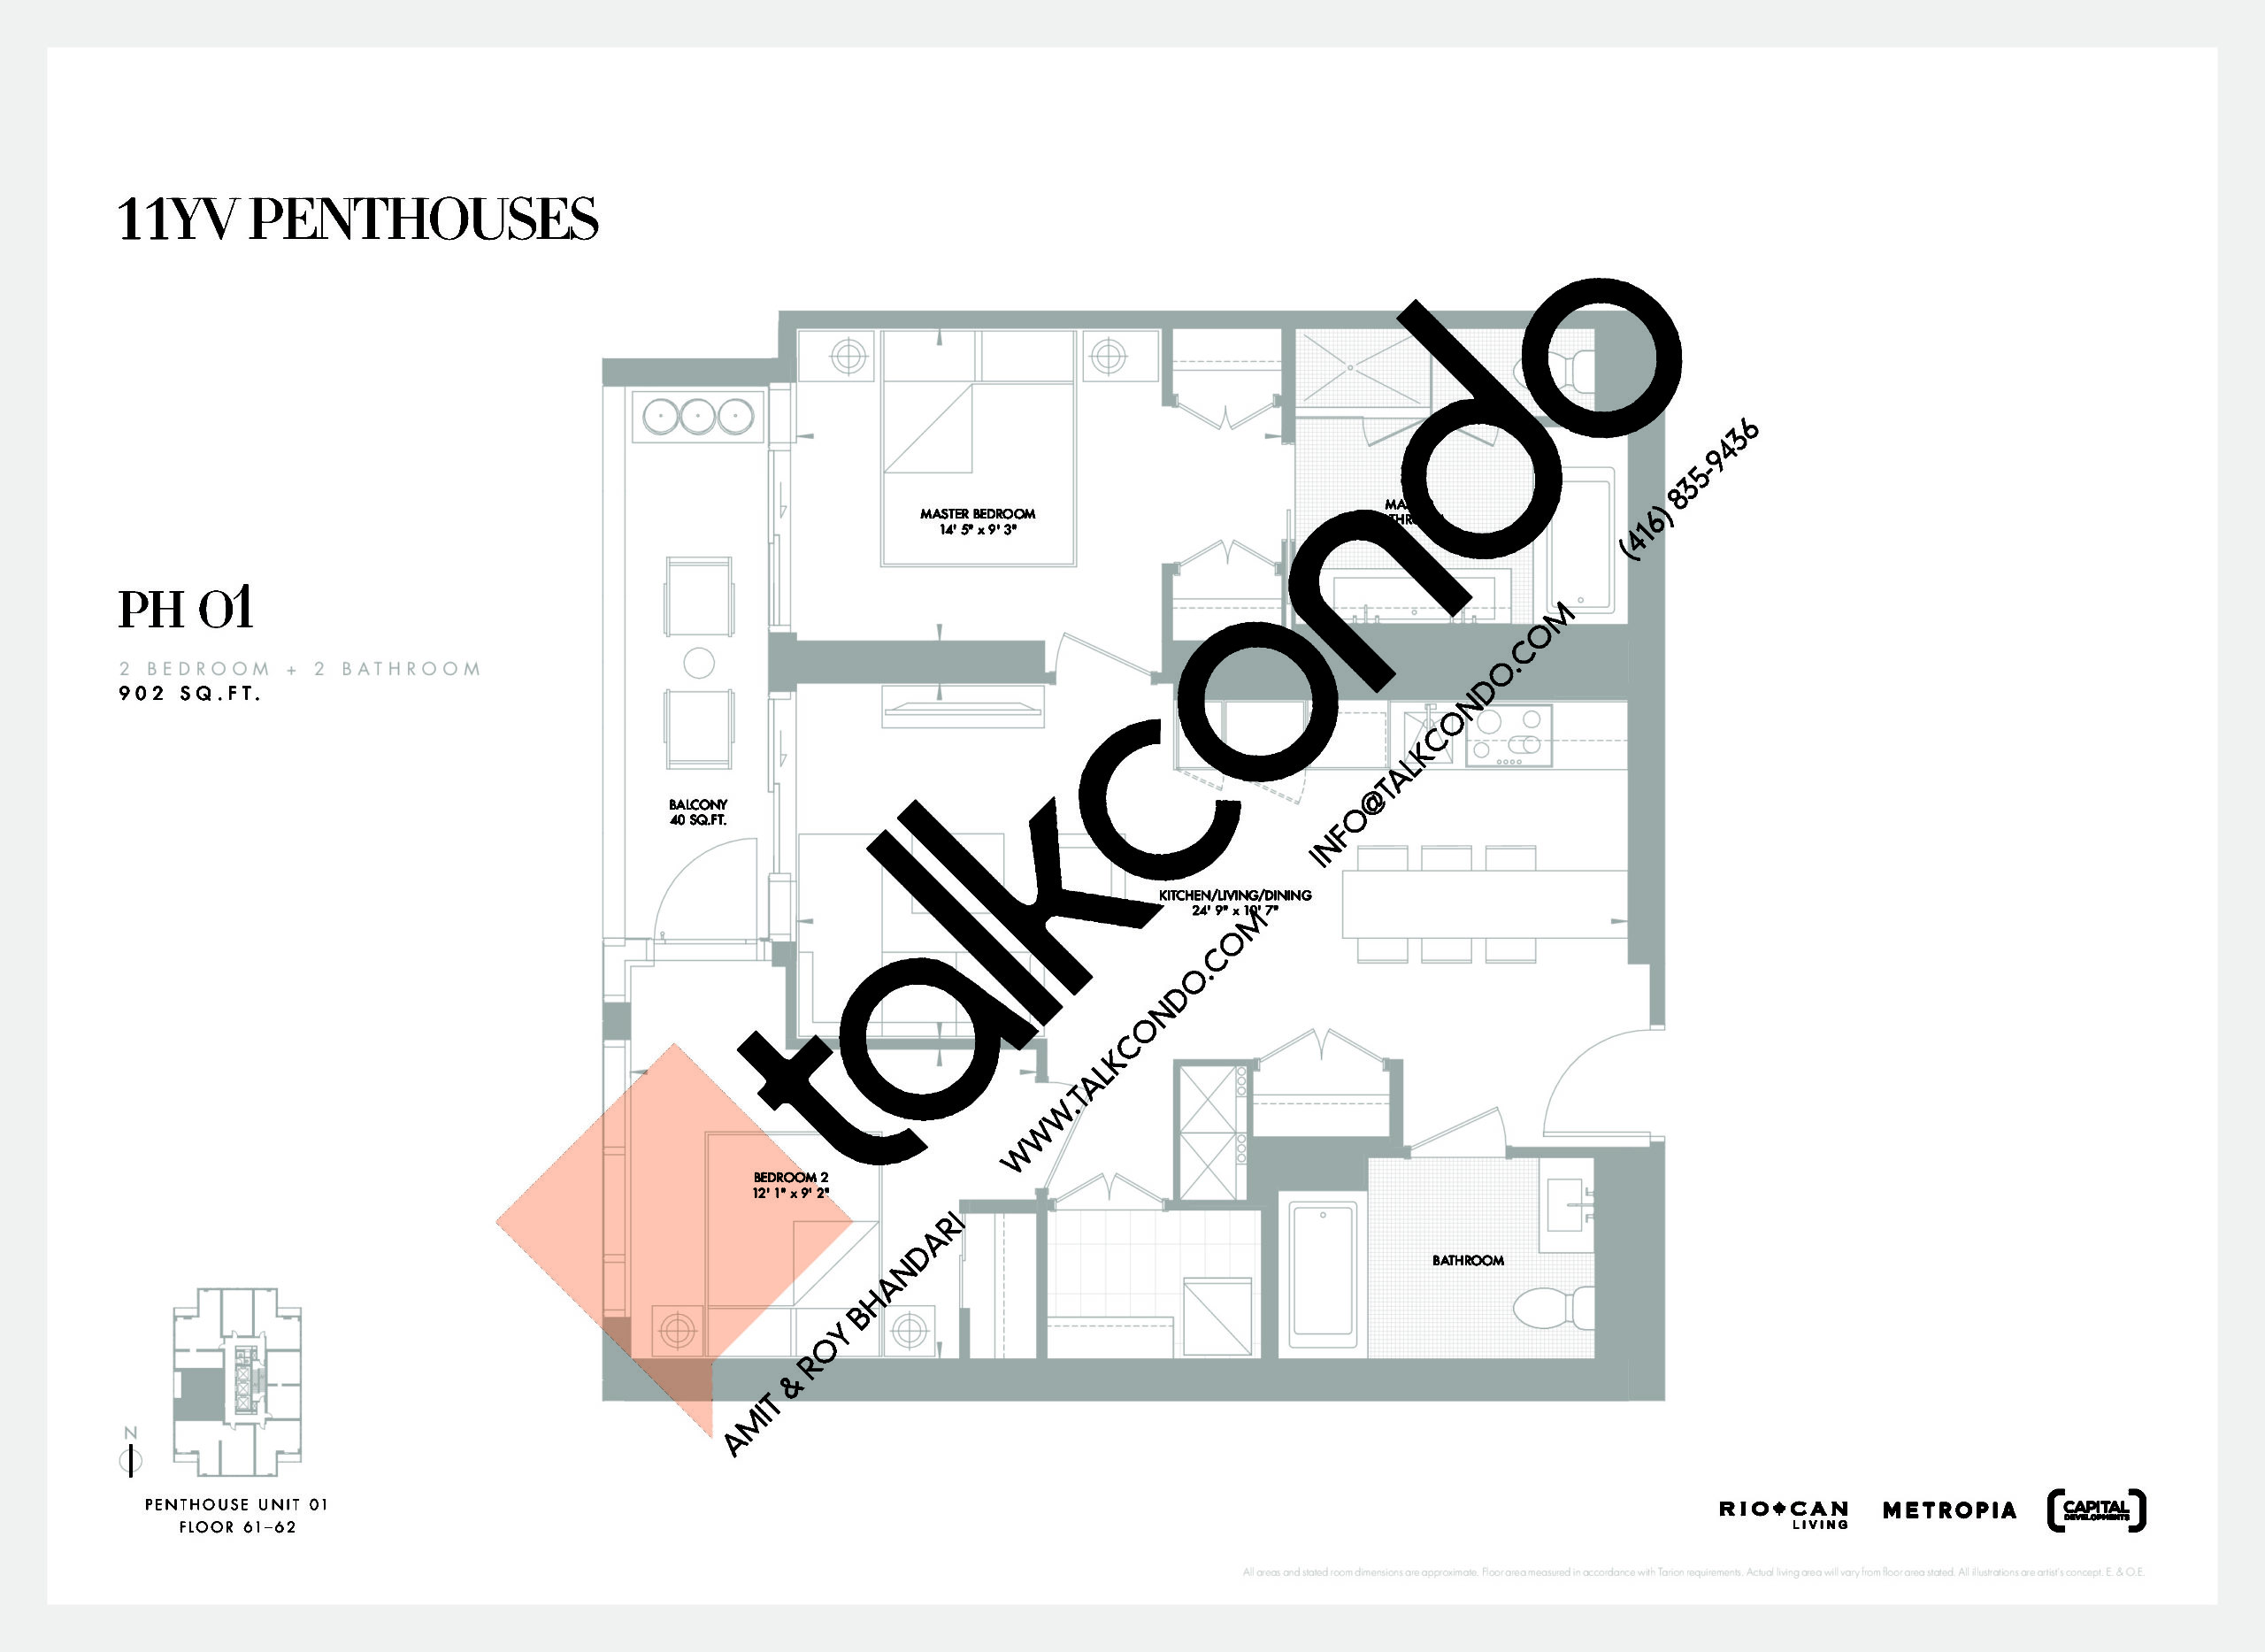 PH 01 Floor Plan at 11YV Condos - 902 sq.ft